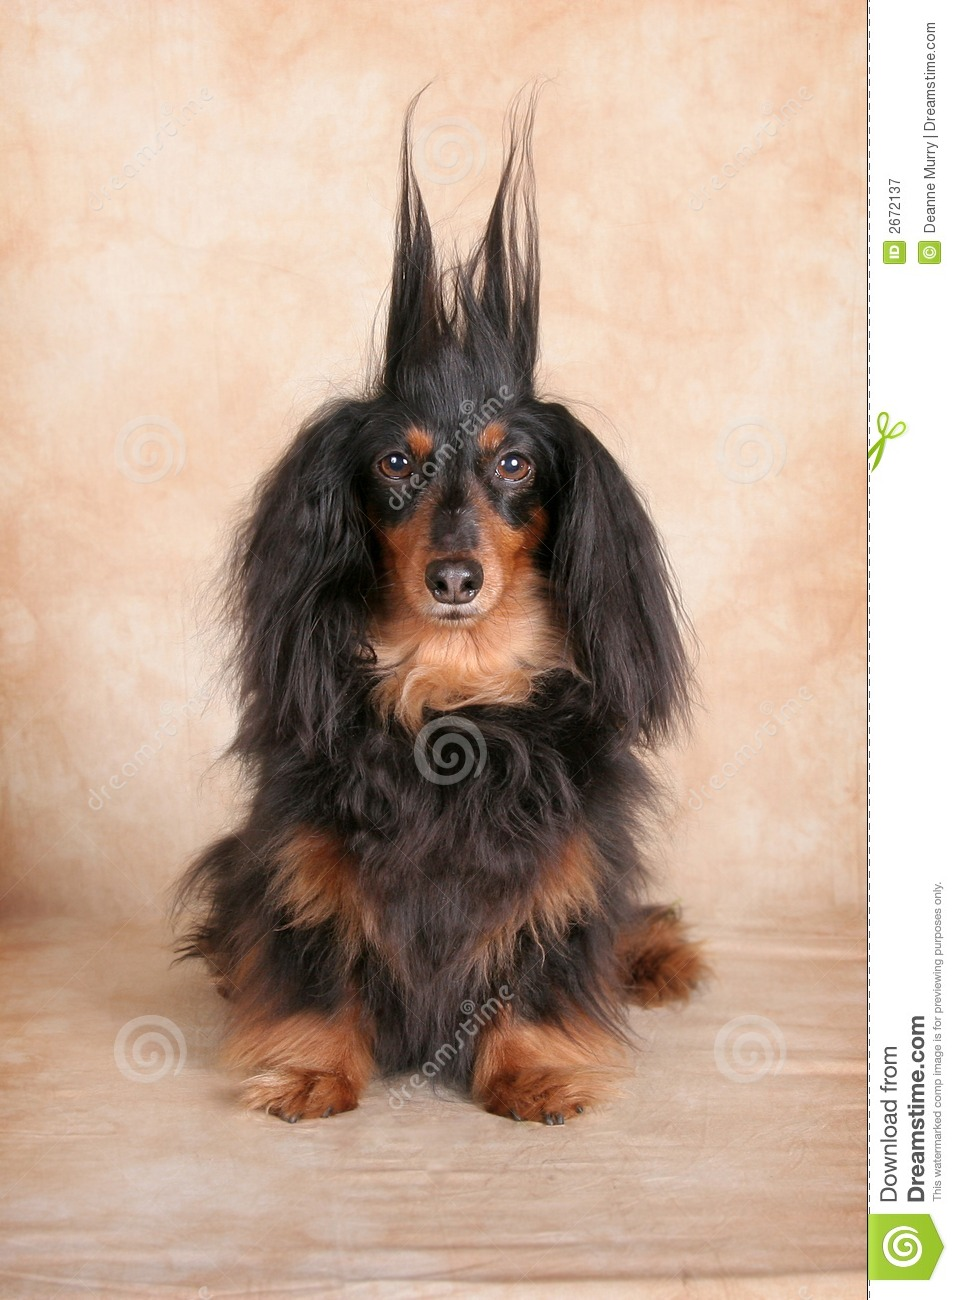 Surprised Dachshund Royalty Free Stock Photography - Image: 2672137